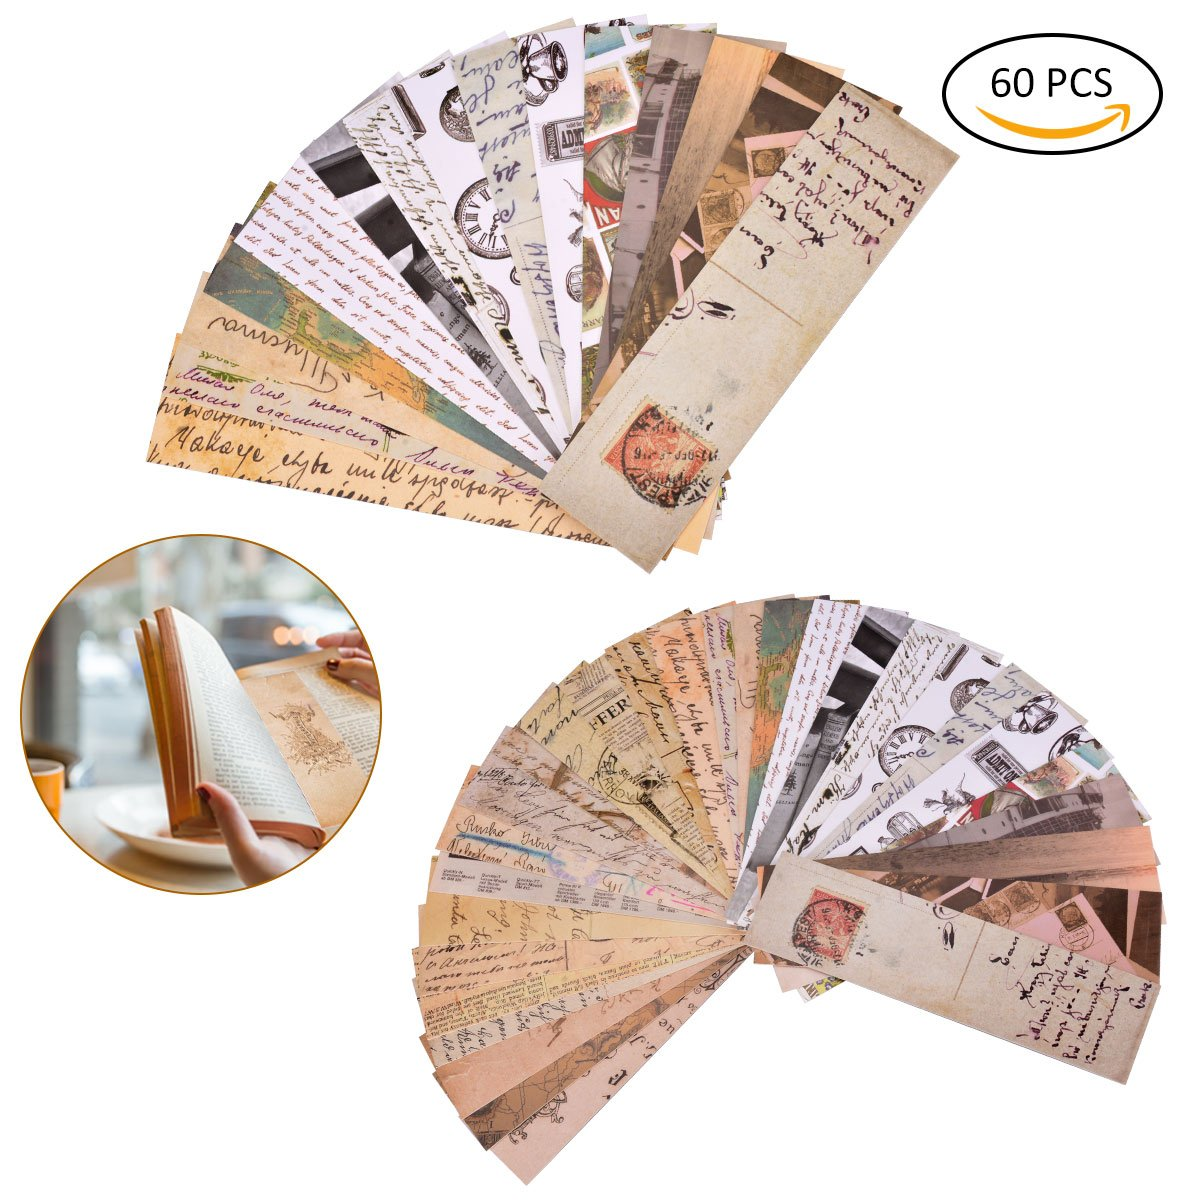 YoungRich 60 PCS Bookmarks Vintage Style Retro Collection Durable Unique Elegant Designs Bookmarks for Women Men Books School Office Note Card Gifts